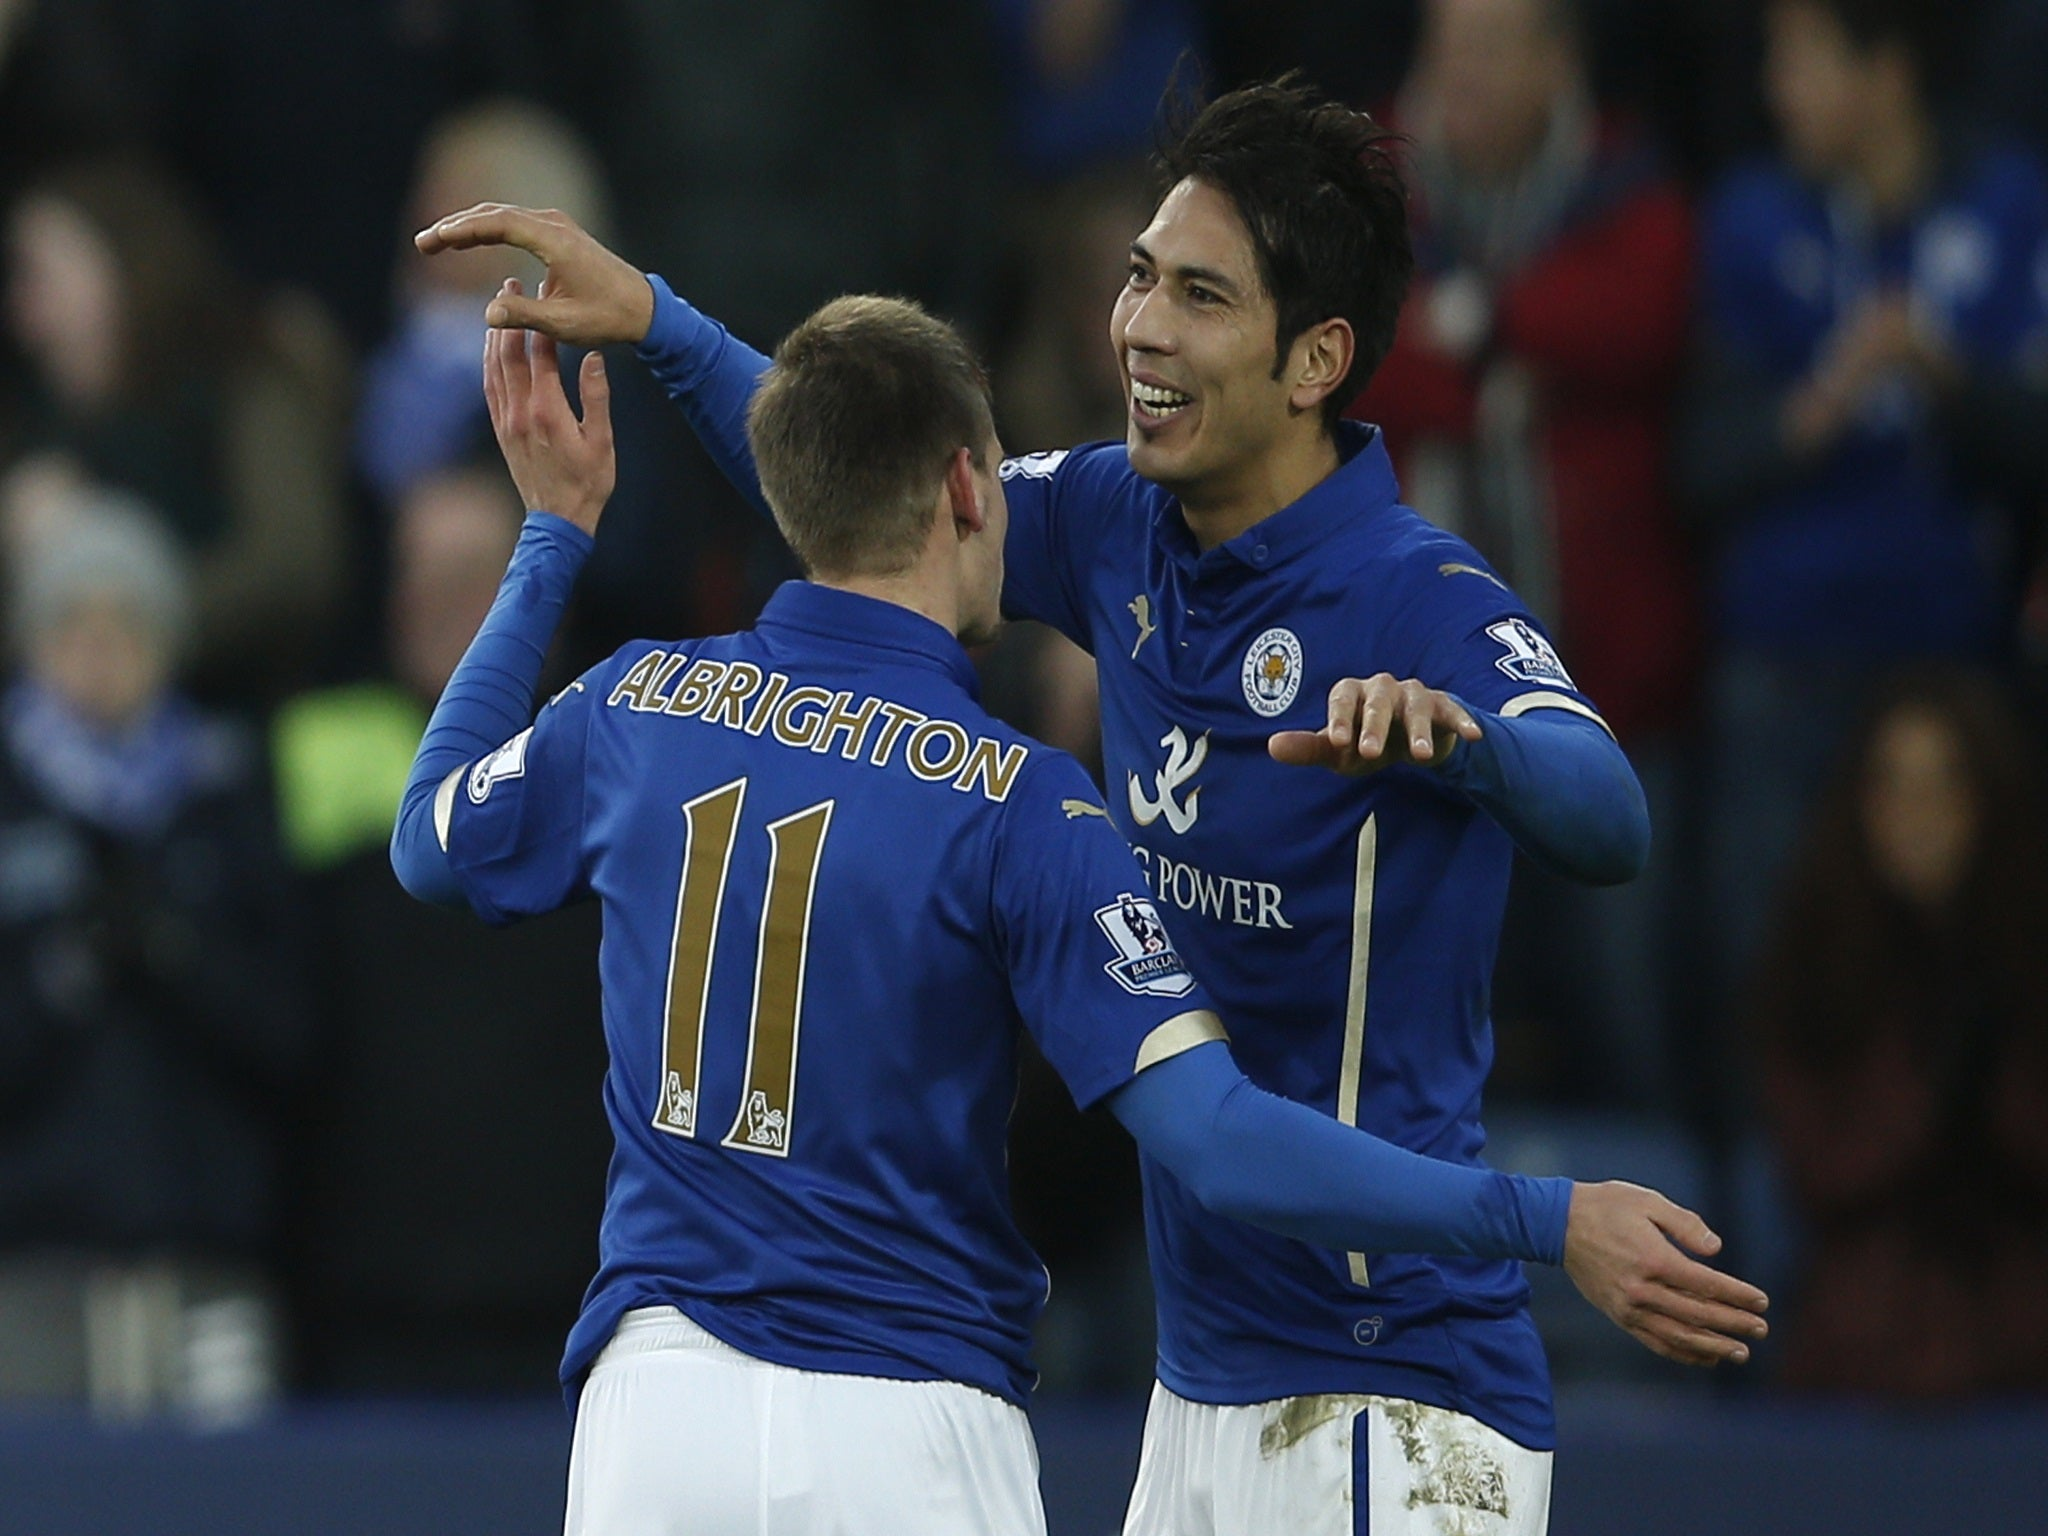 Leicester City vs Swansea City reaction: Foxes' stunning revival continues as Swans miss out on historic landmark